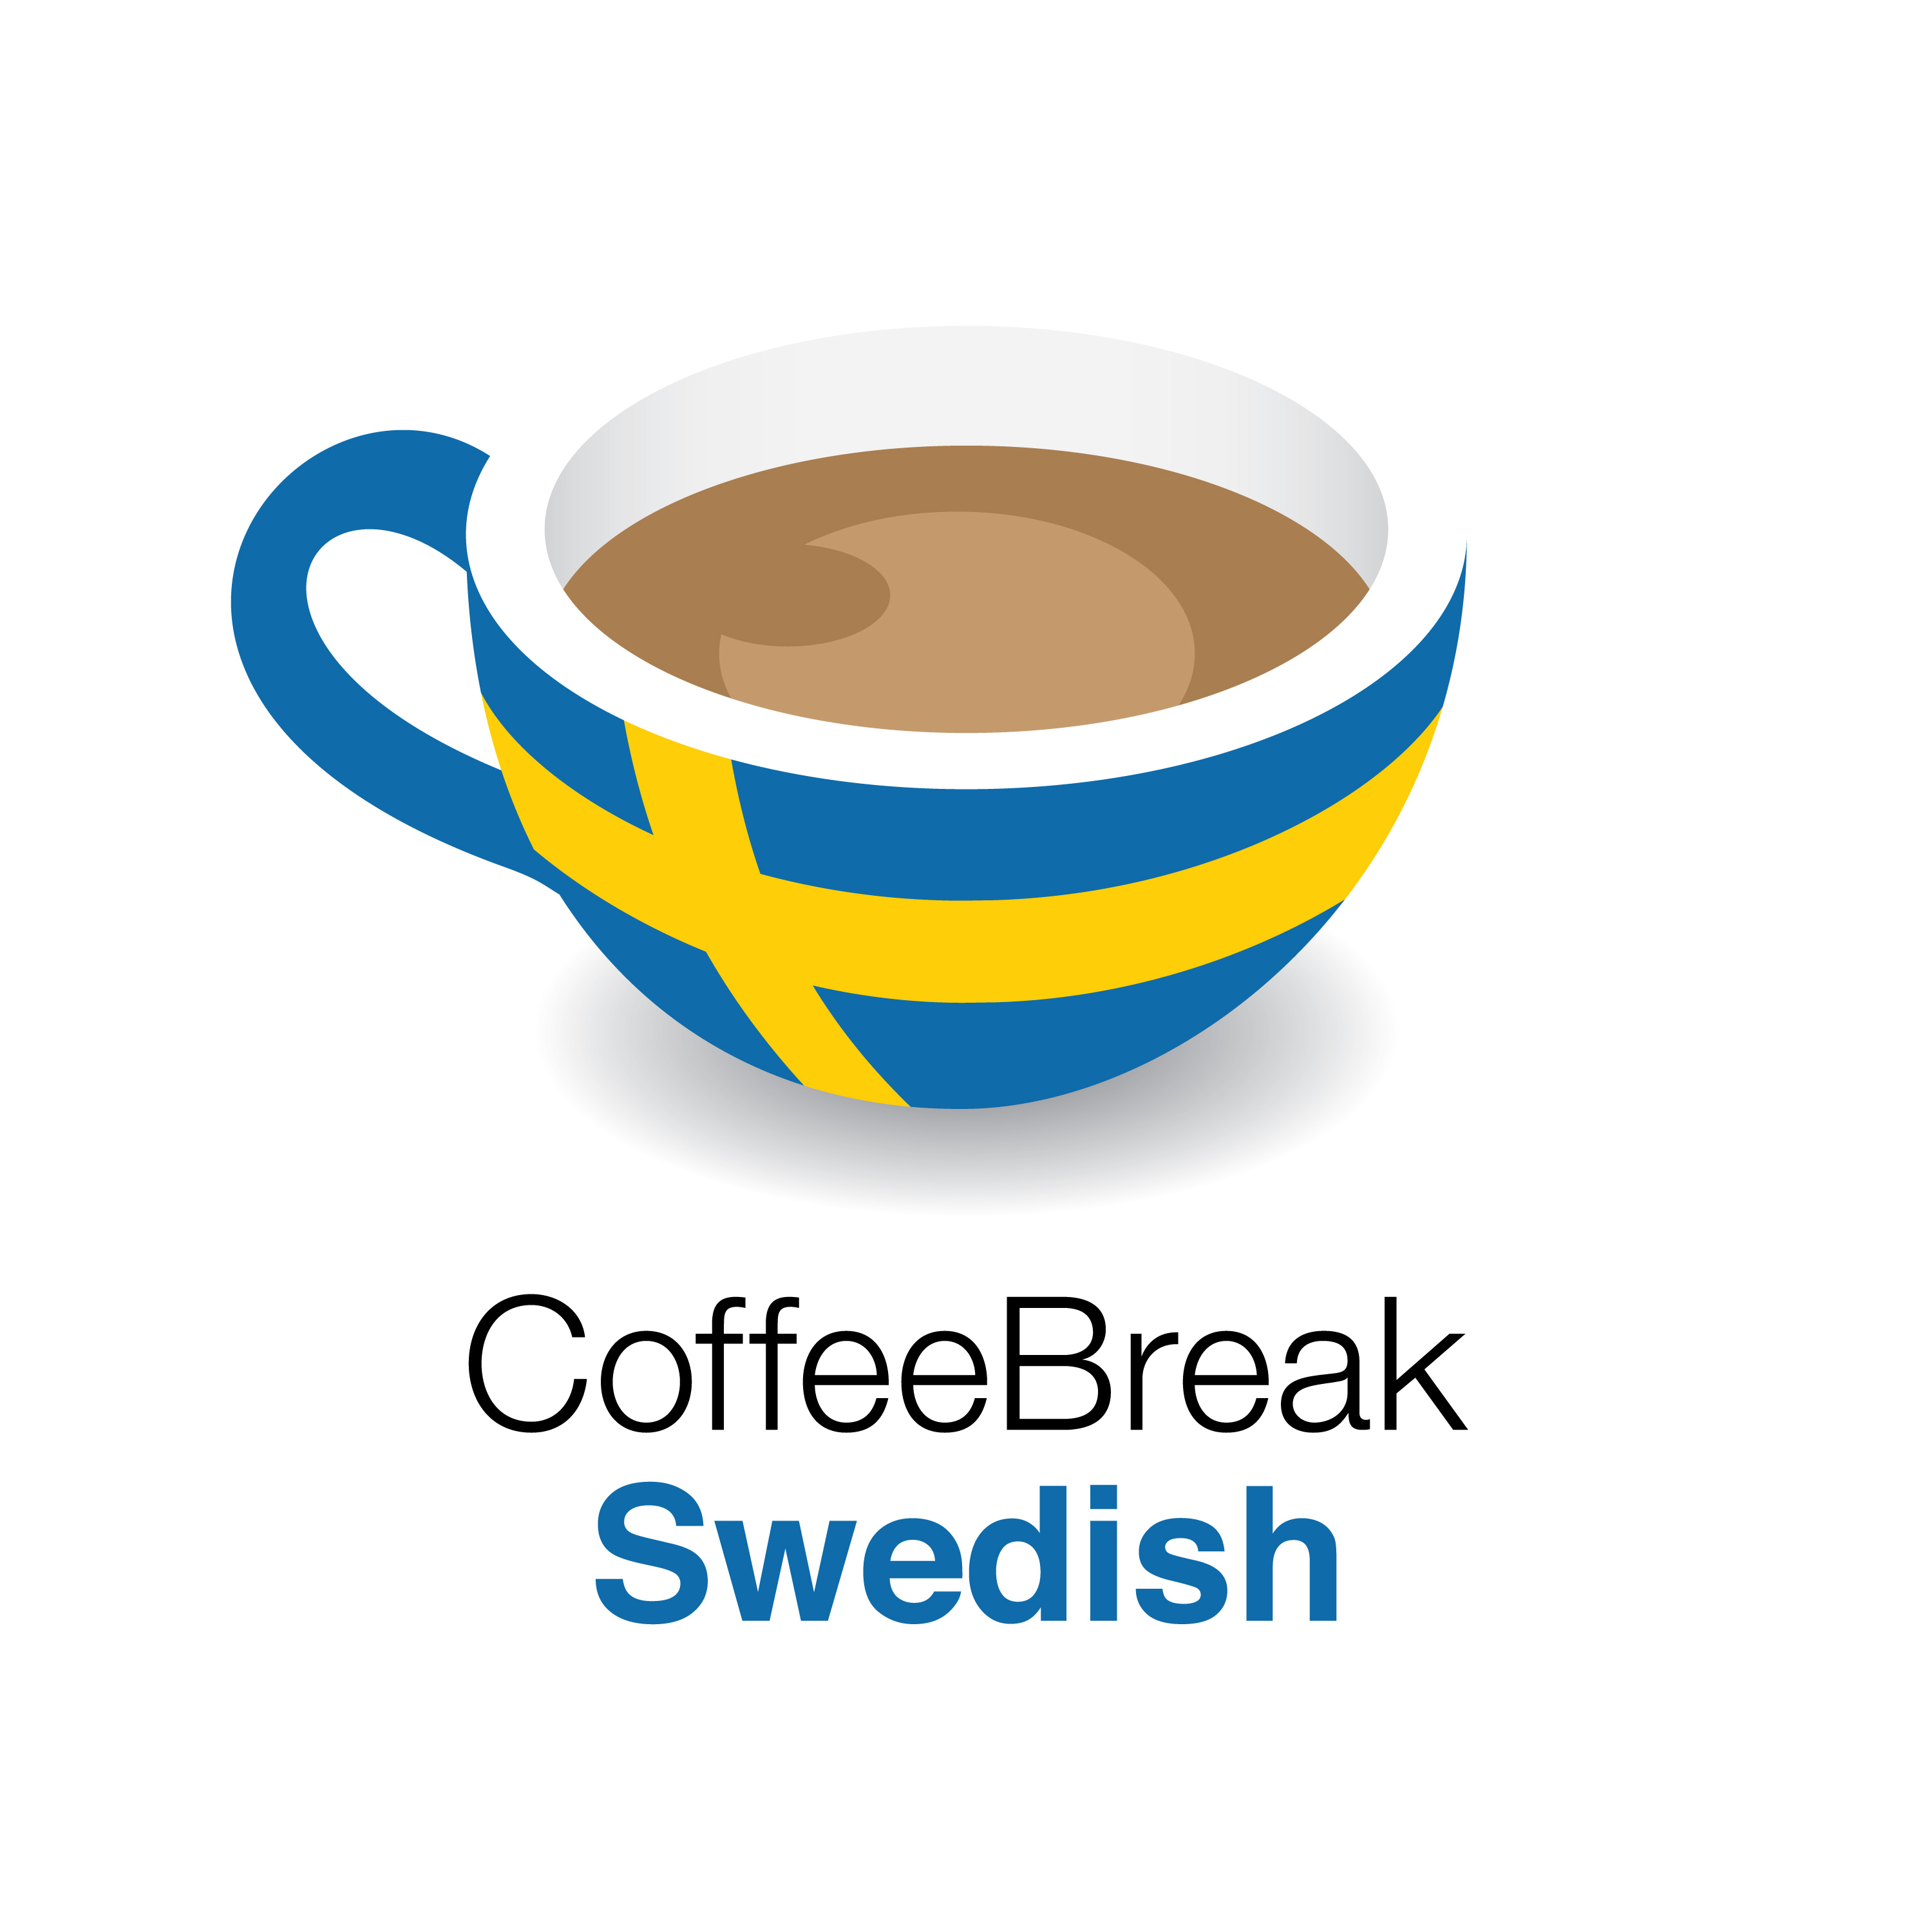 The Coffee Break Swedish Team